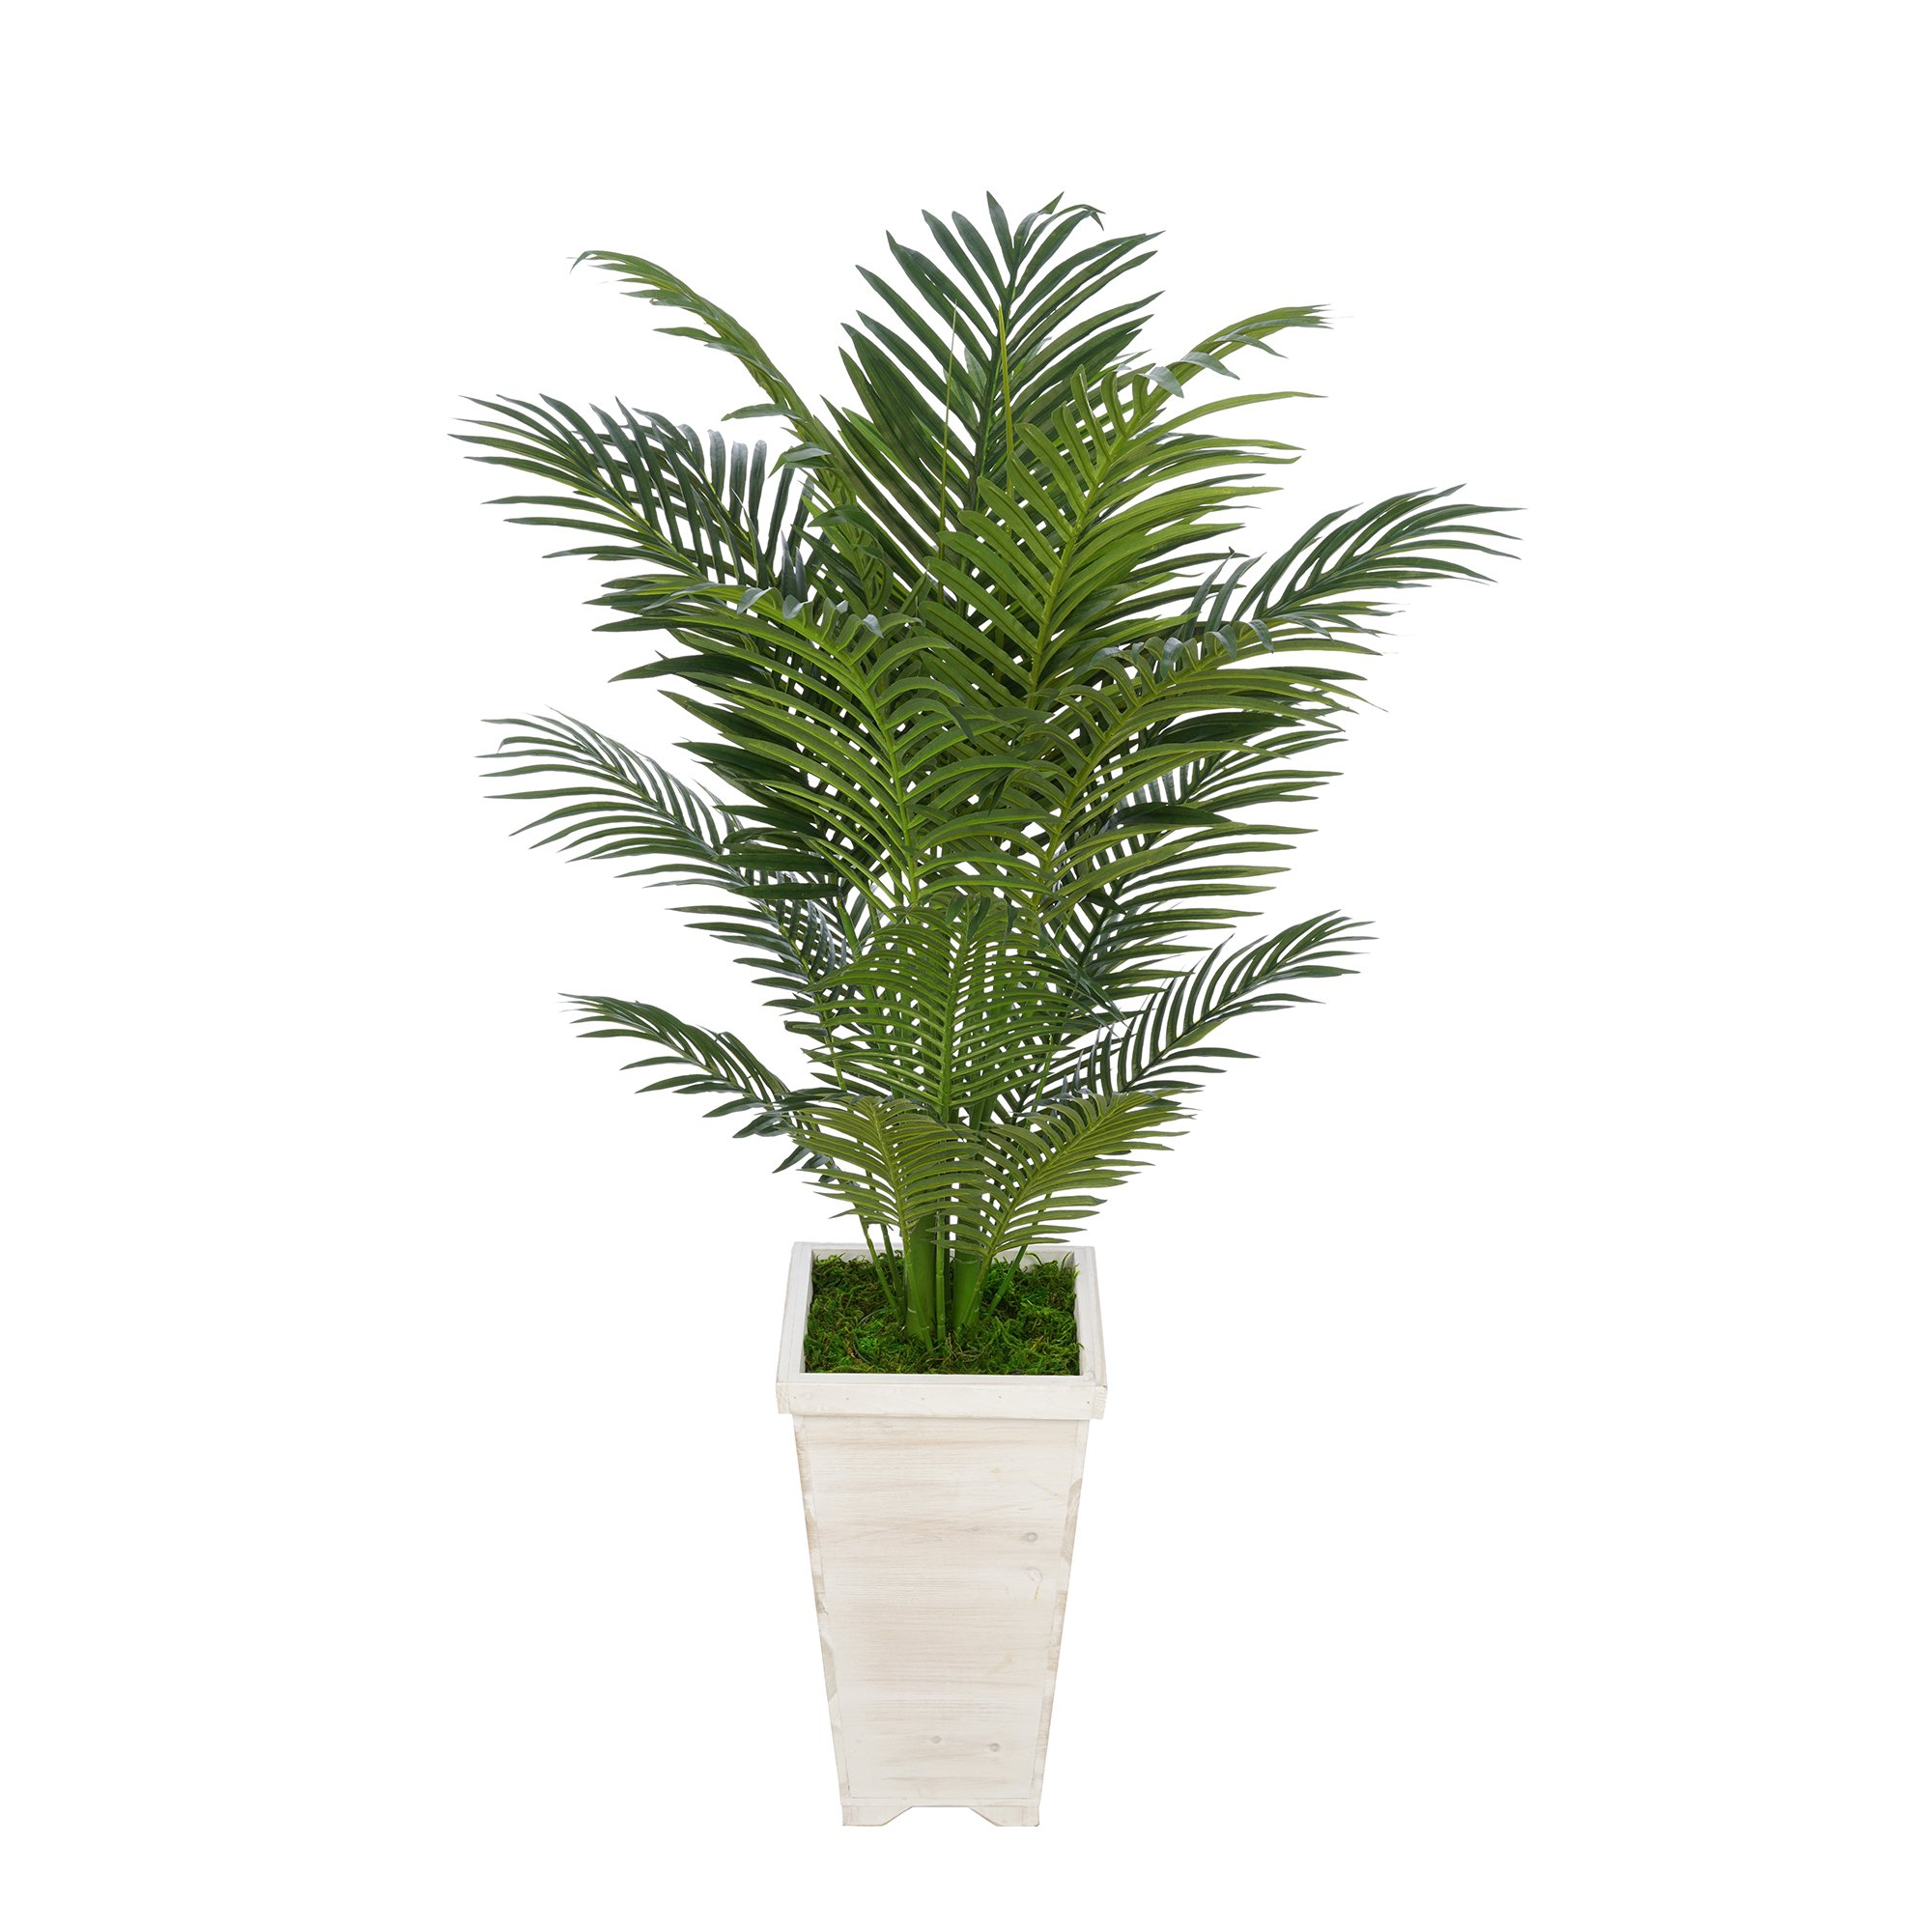 Artificial 4-1/2 foot Areca Palm in Tall Washed Wood Planters (White)